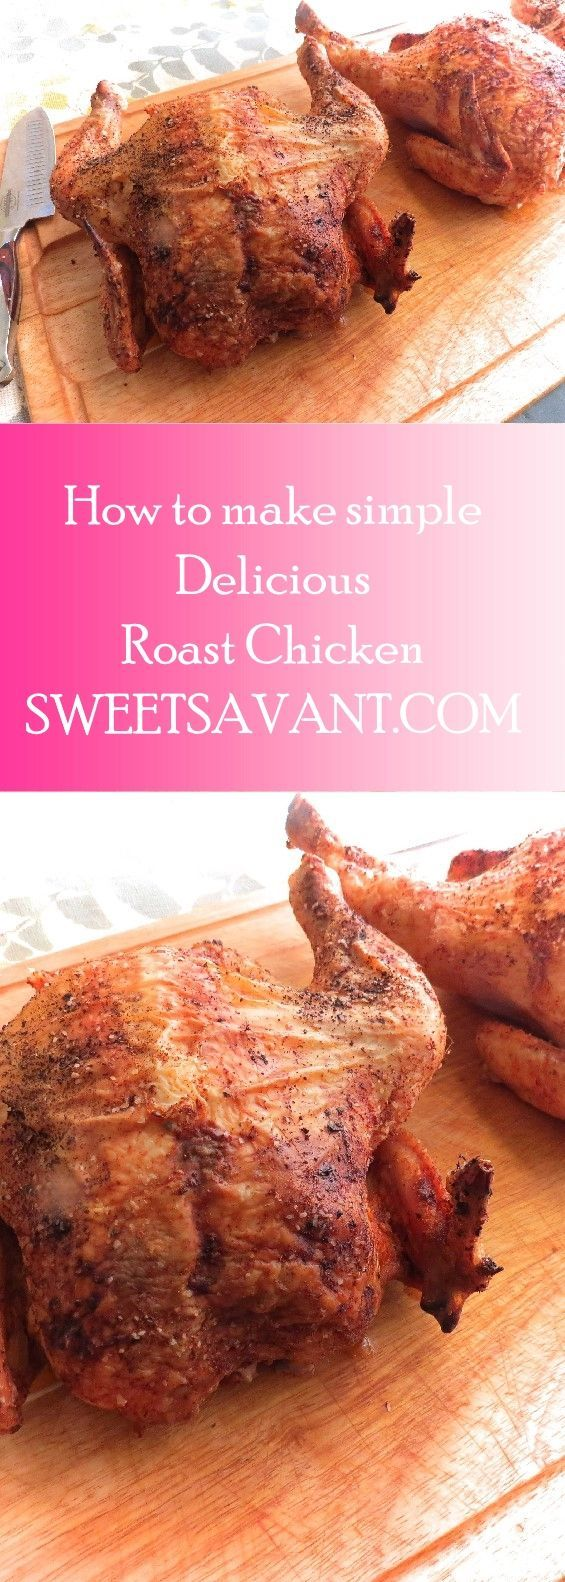 Roast chicken recipe how to make simple, delicious roast chicken http://sweetsavant.com America's best food blog